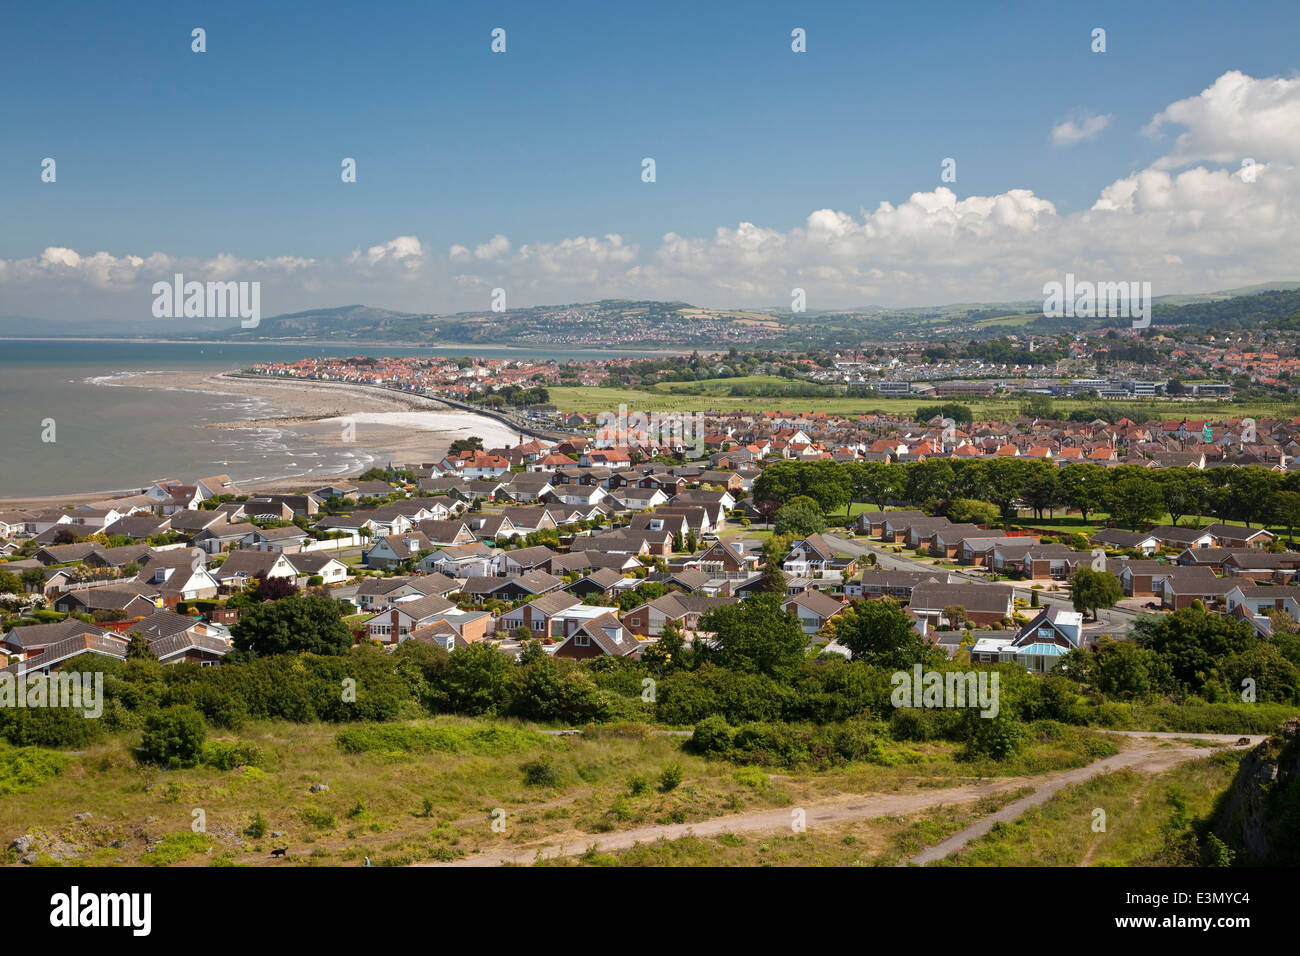 Penrhyn Bay on the North Wales coast viewed from the top of the Little Orme headland - Stock Image